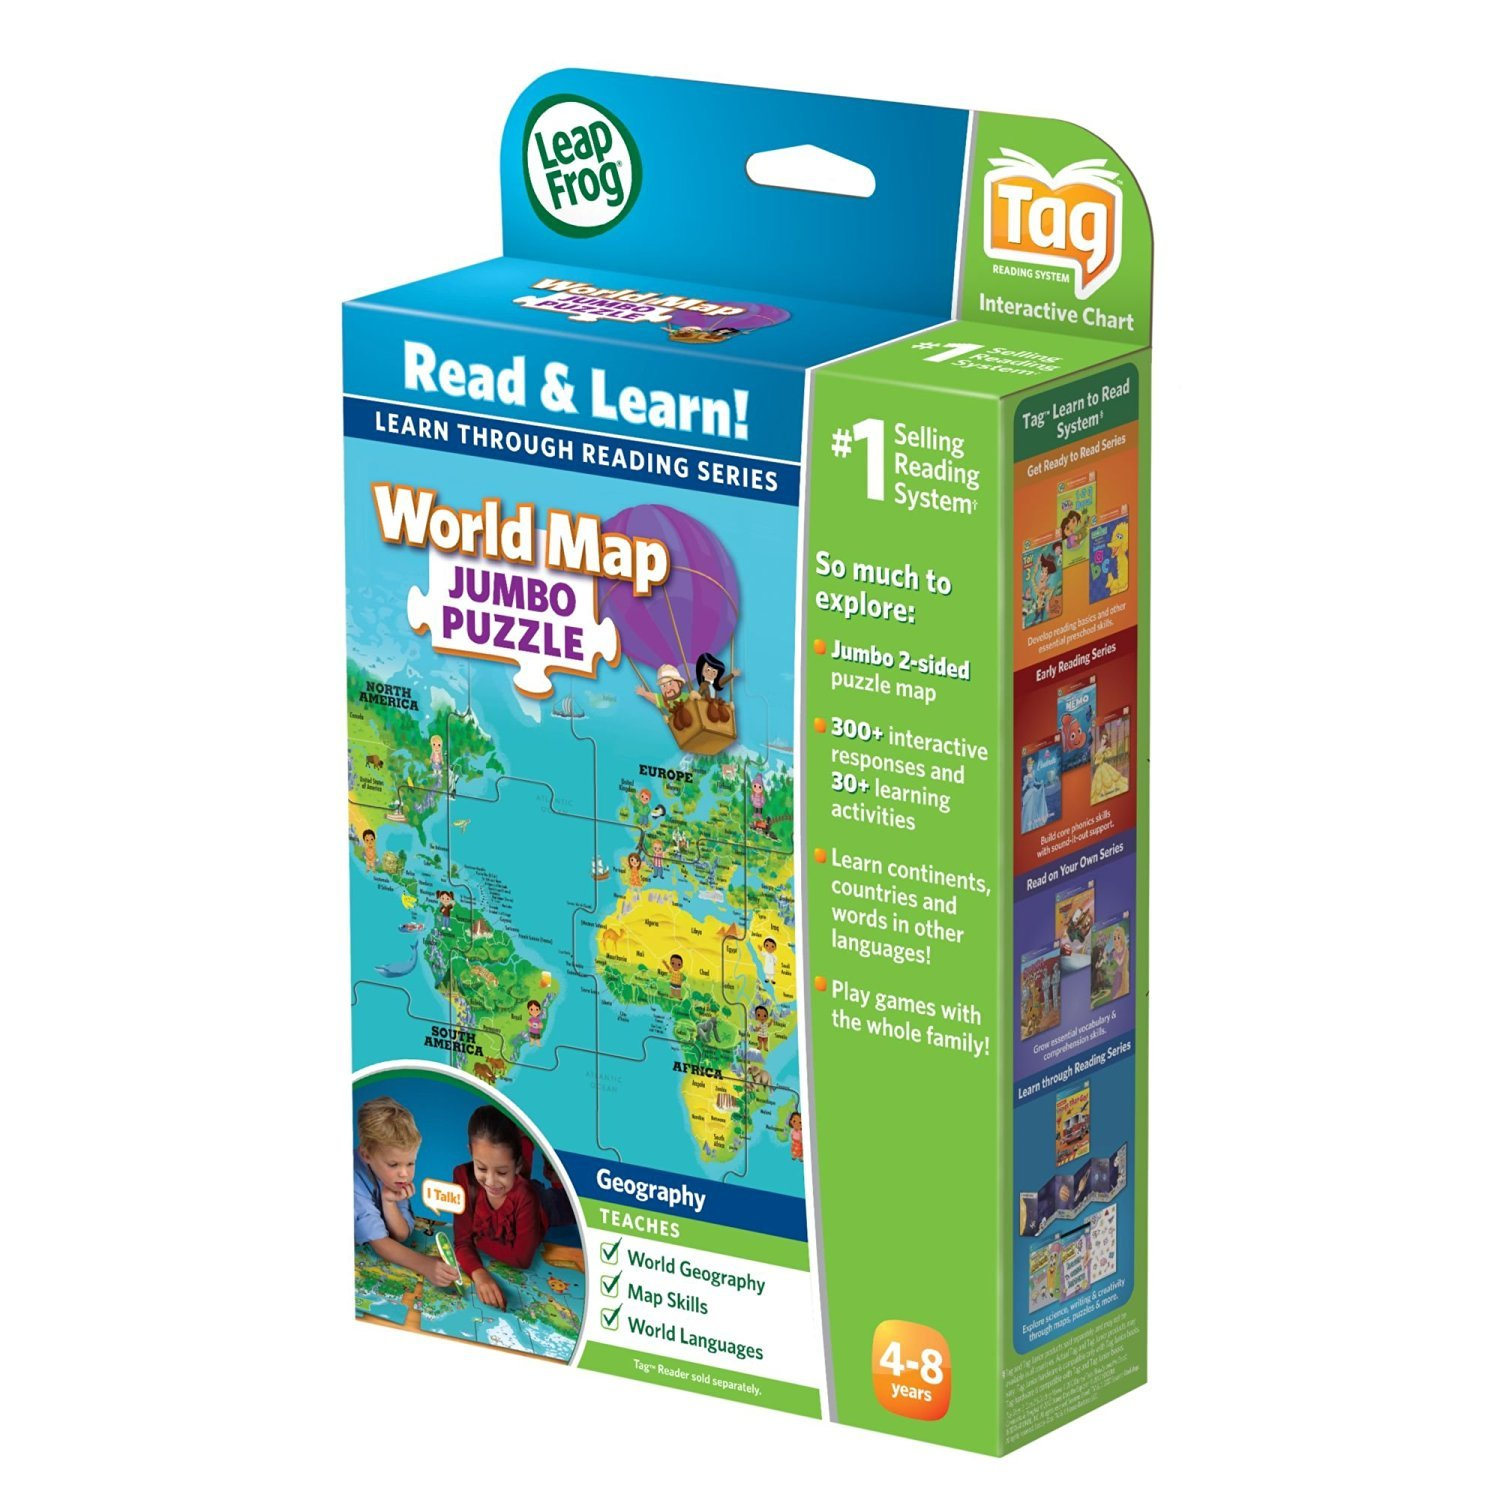 Leapfrog leapreader discovery set world map jumbo puzzle toy leapfrog leapreader discovery set world map jumbo puzzle works with tag image gumiabroncs Gallery